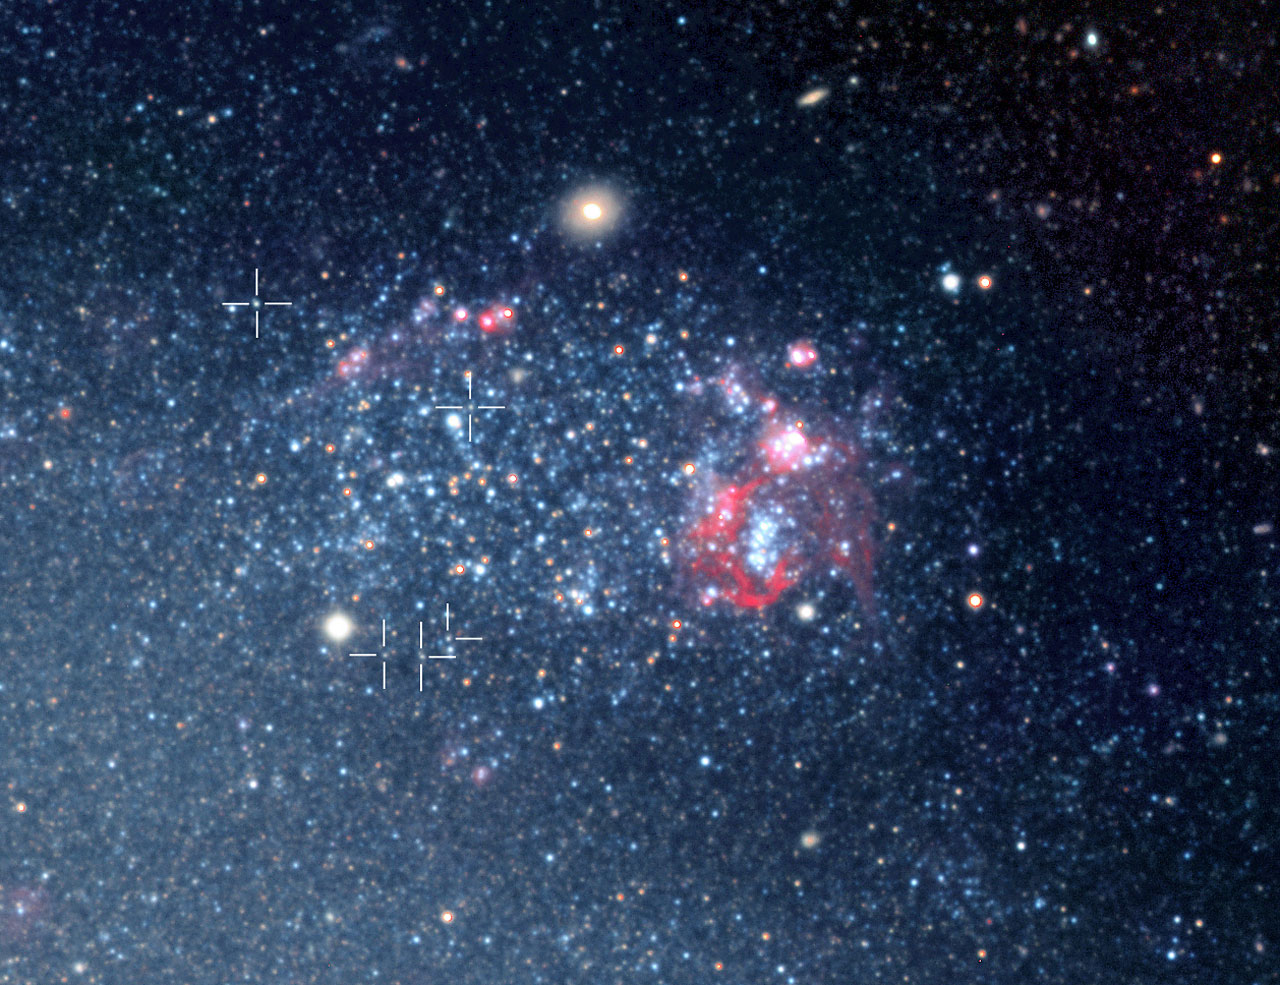 Cepheids in NGC 300